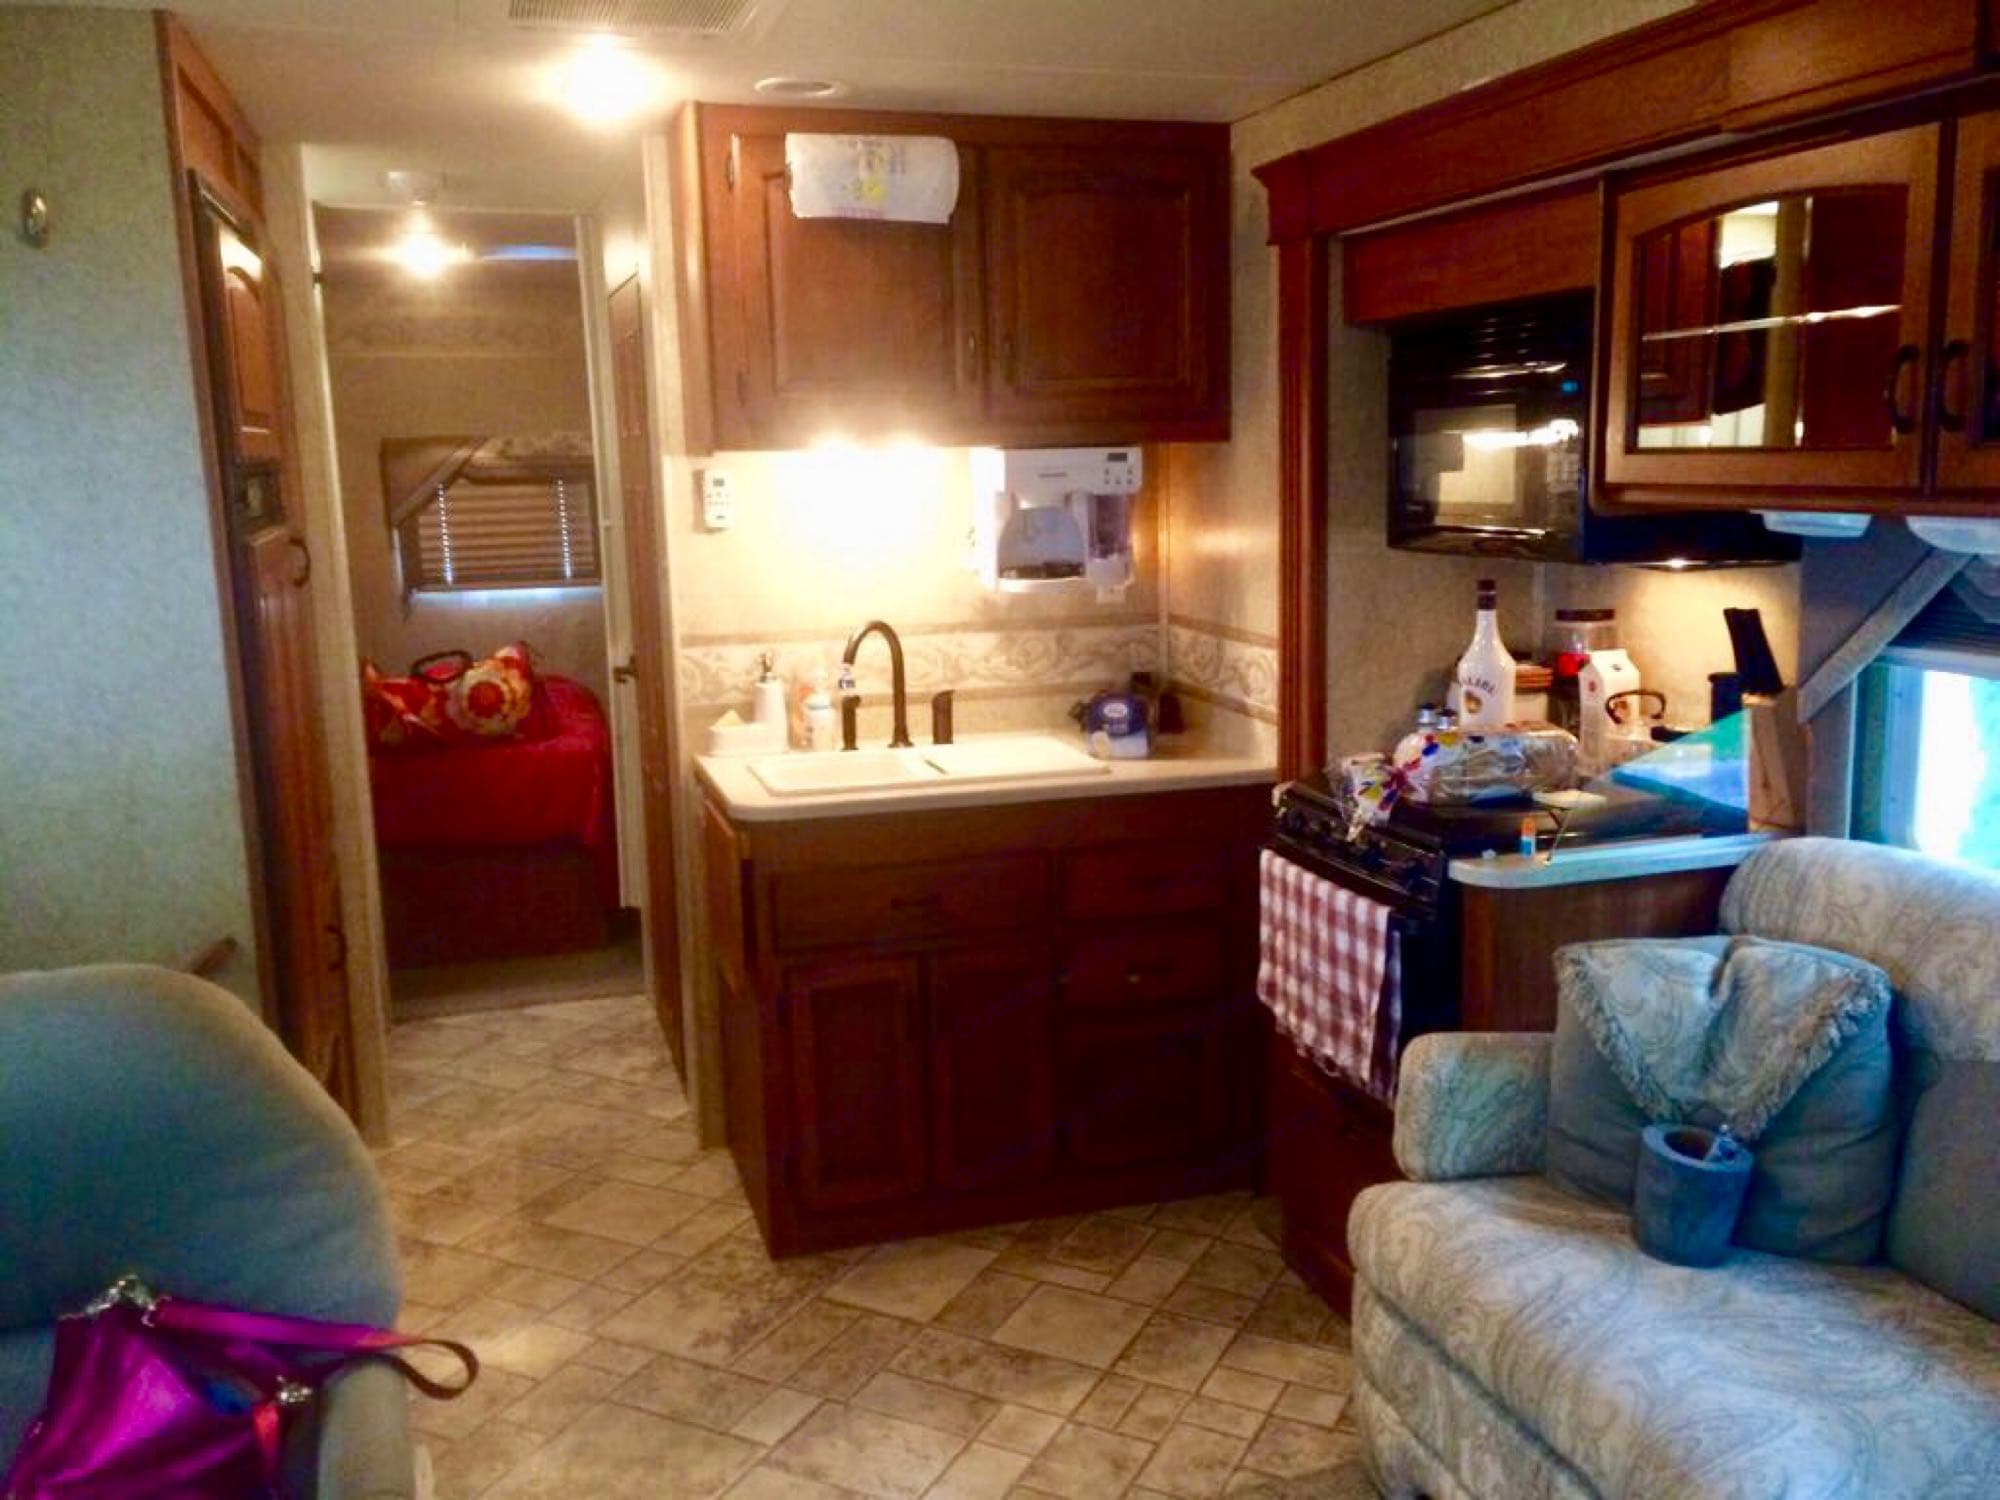 The living room slide out is open in this photo. Jayco Greyhawk 2007